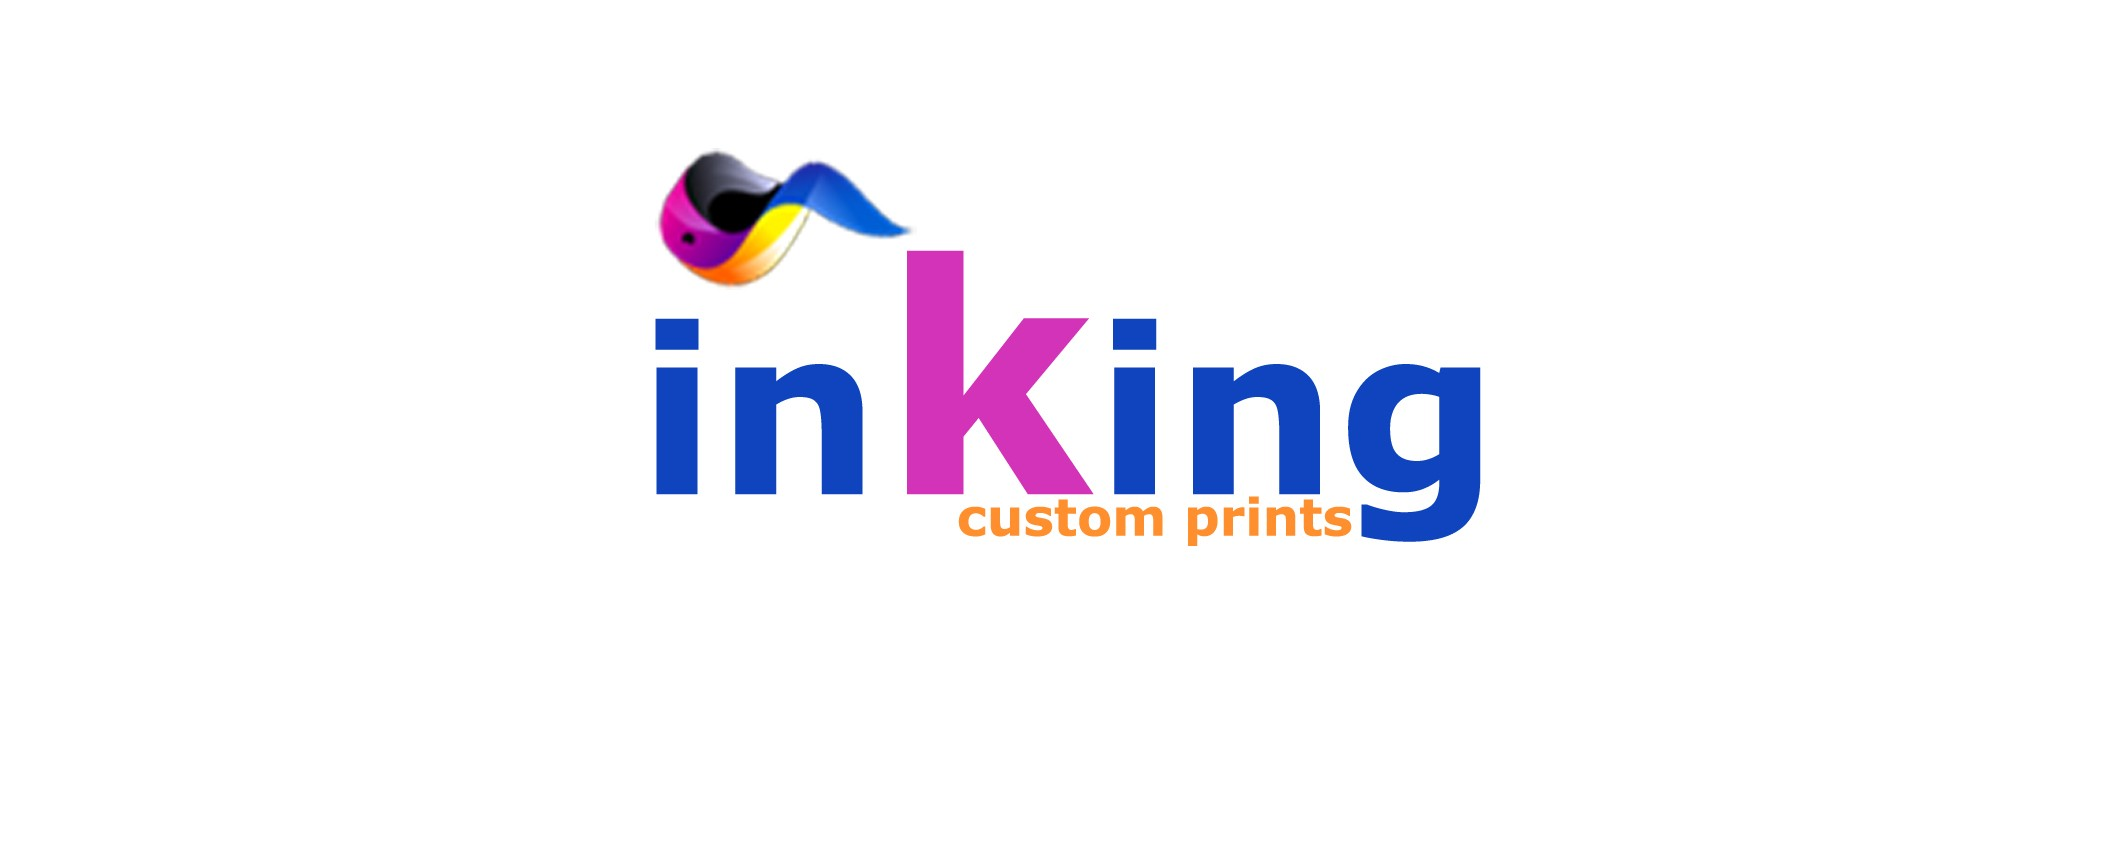 Inking store - Online customized printing